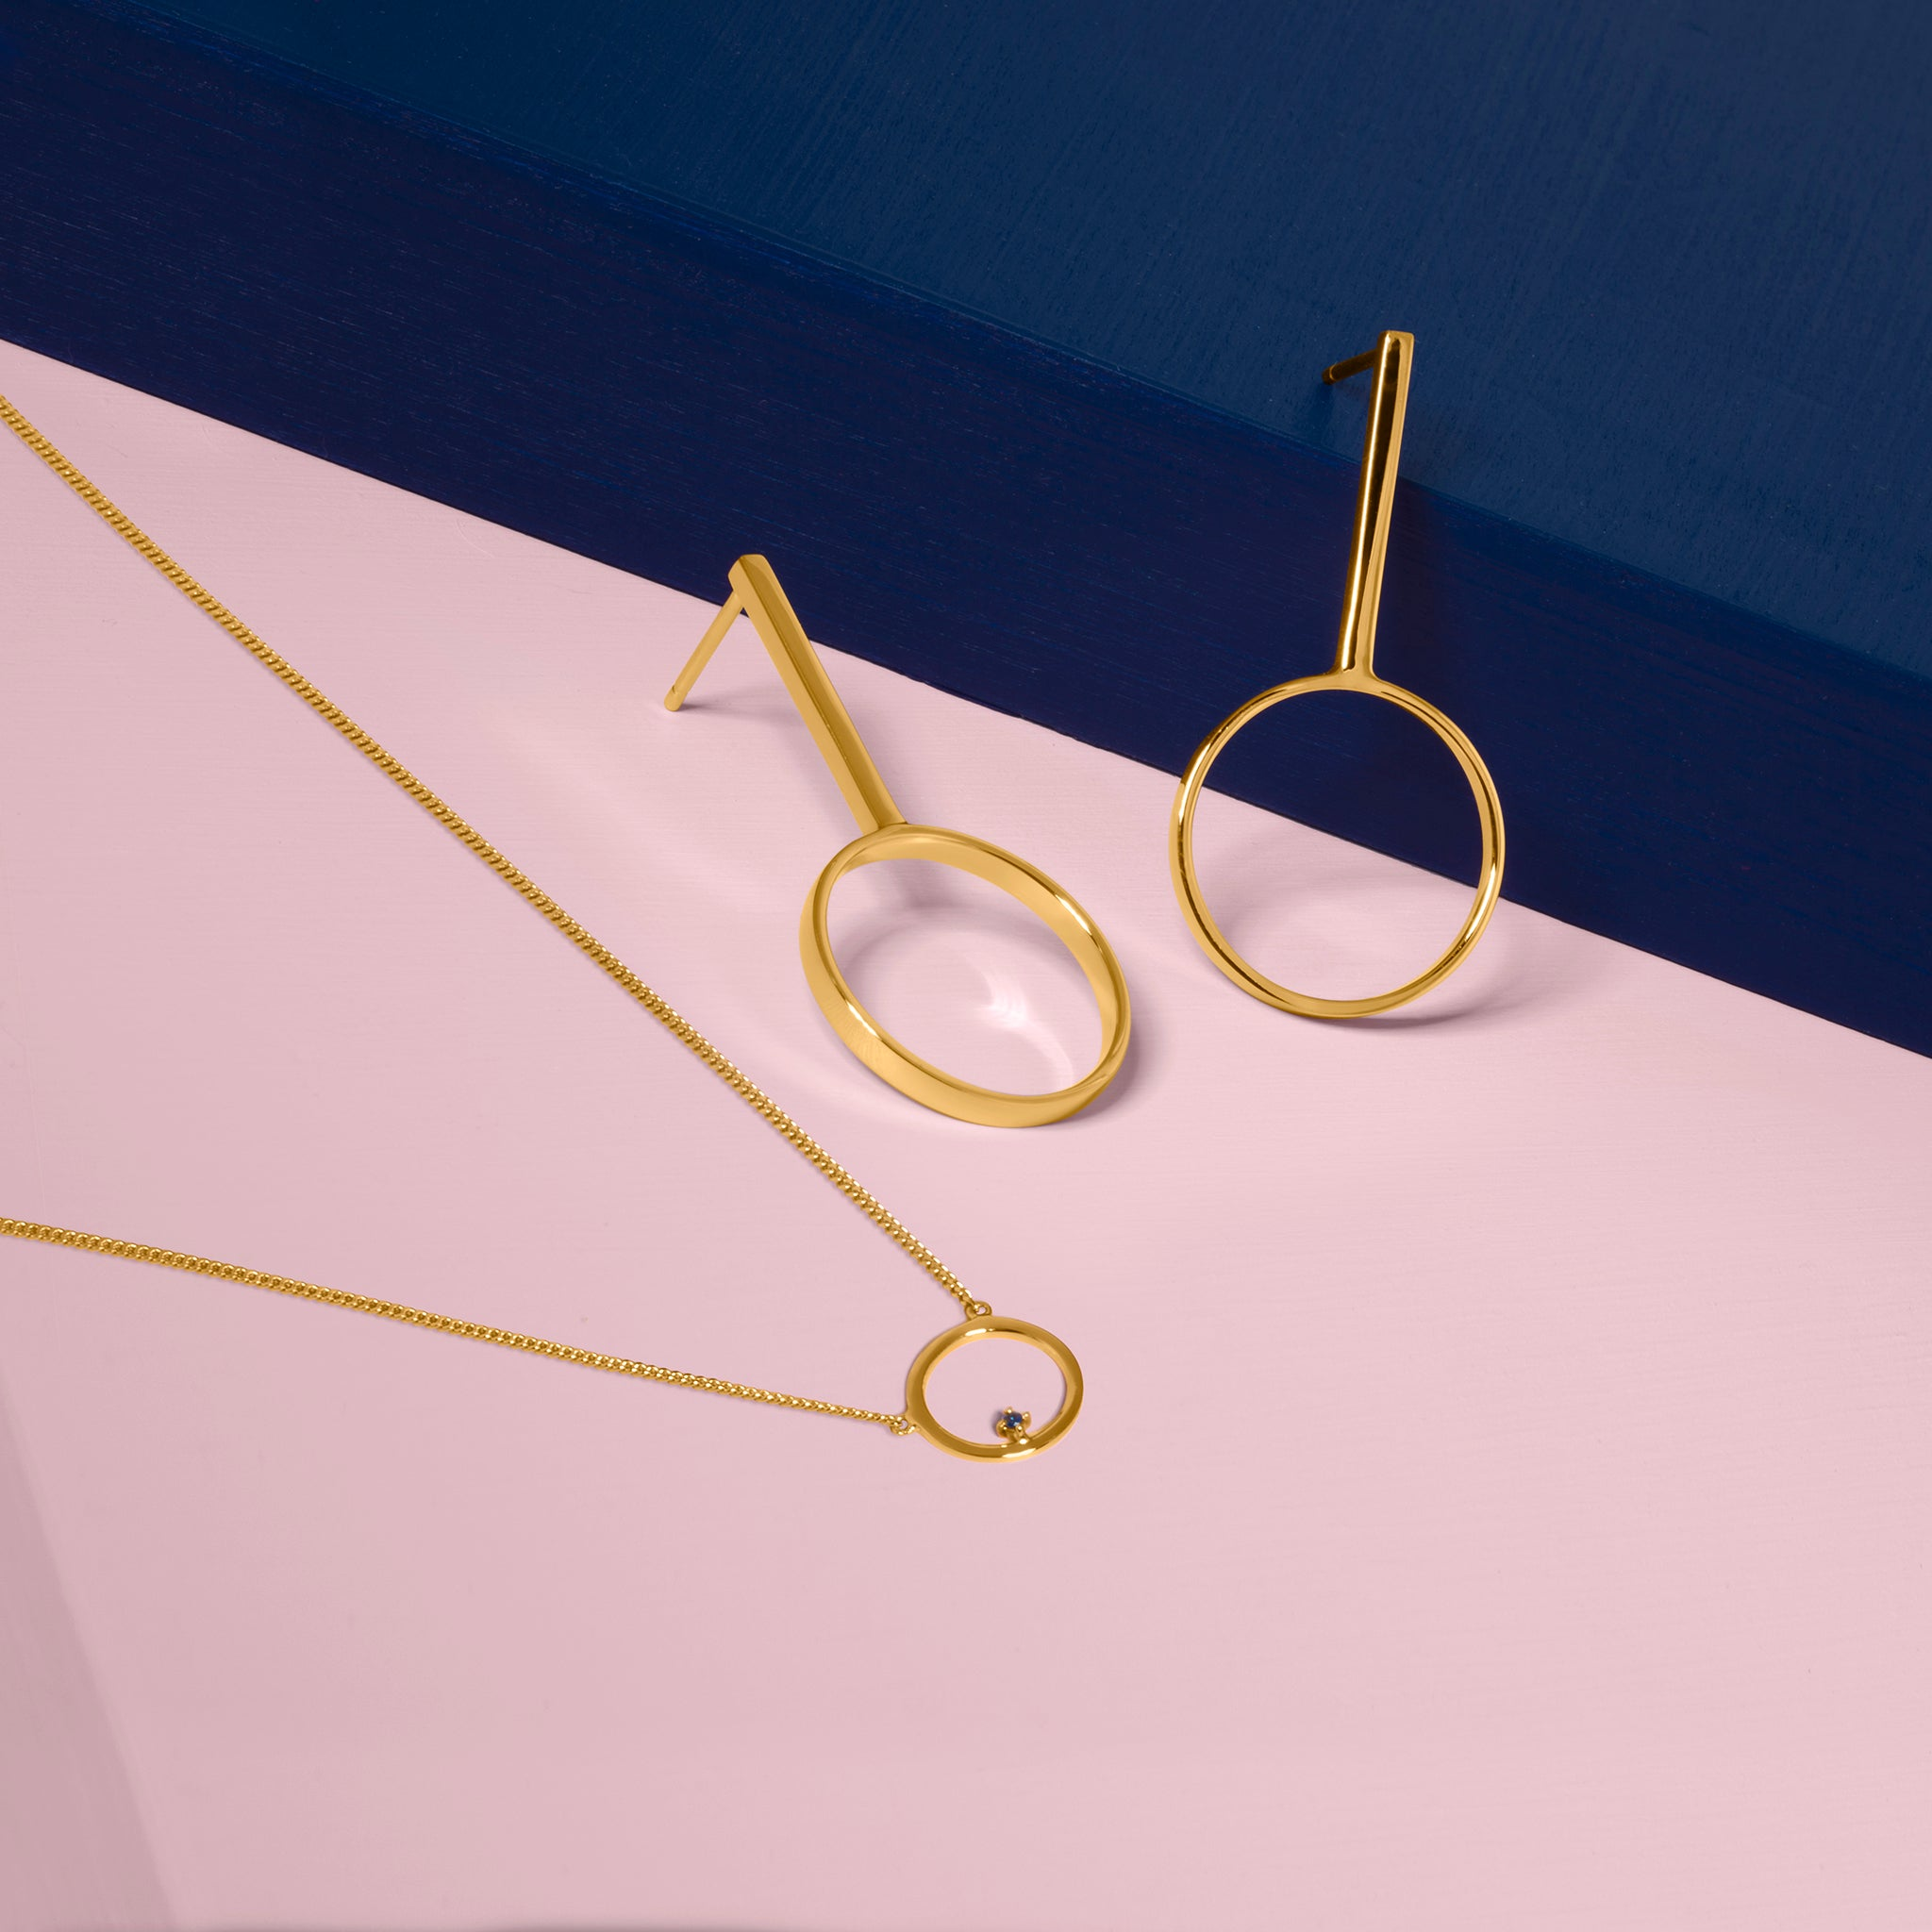 Republic Road Free to Roam Necklace and Clarity Earrings Gold | Styled on Pink and Blue